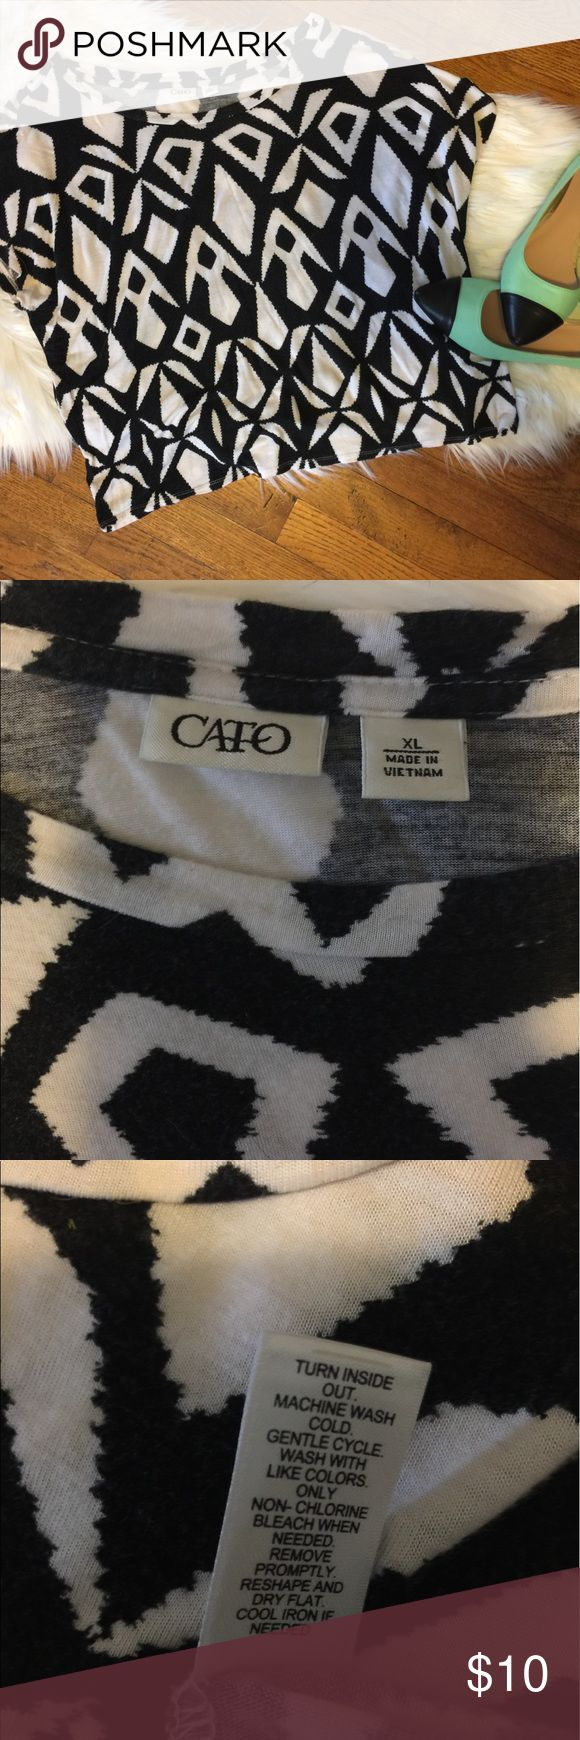 Black and White Cato's XL Aztec Print Crop Top Very pretty black and white Aztec print long crop top. 100% rayon. Very stretchy and comfortable. Great condition. Cato Tops Crop Tops